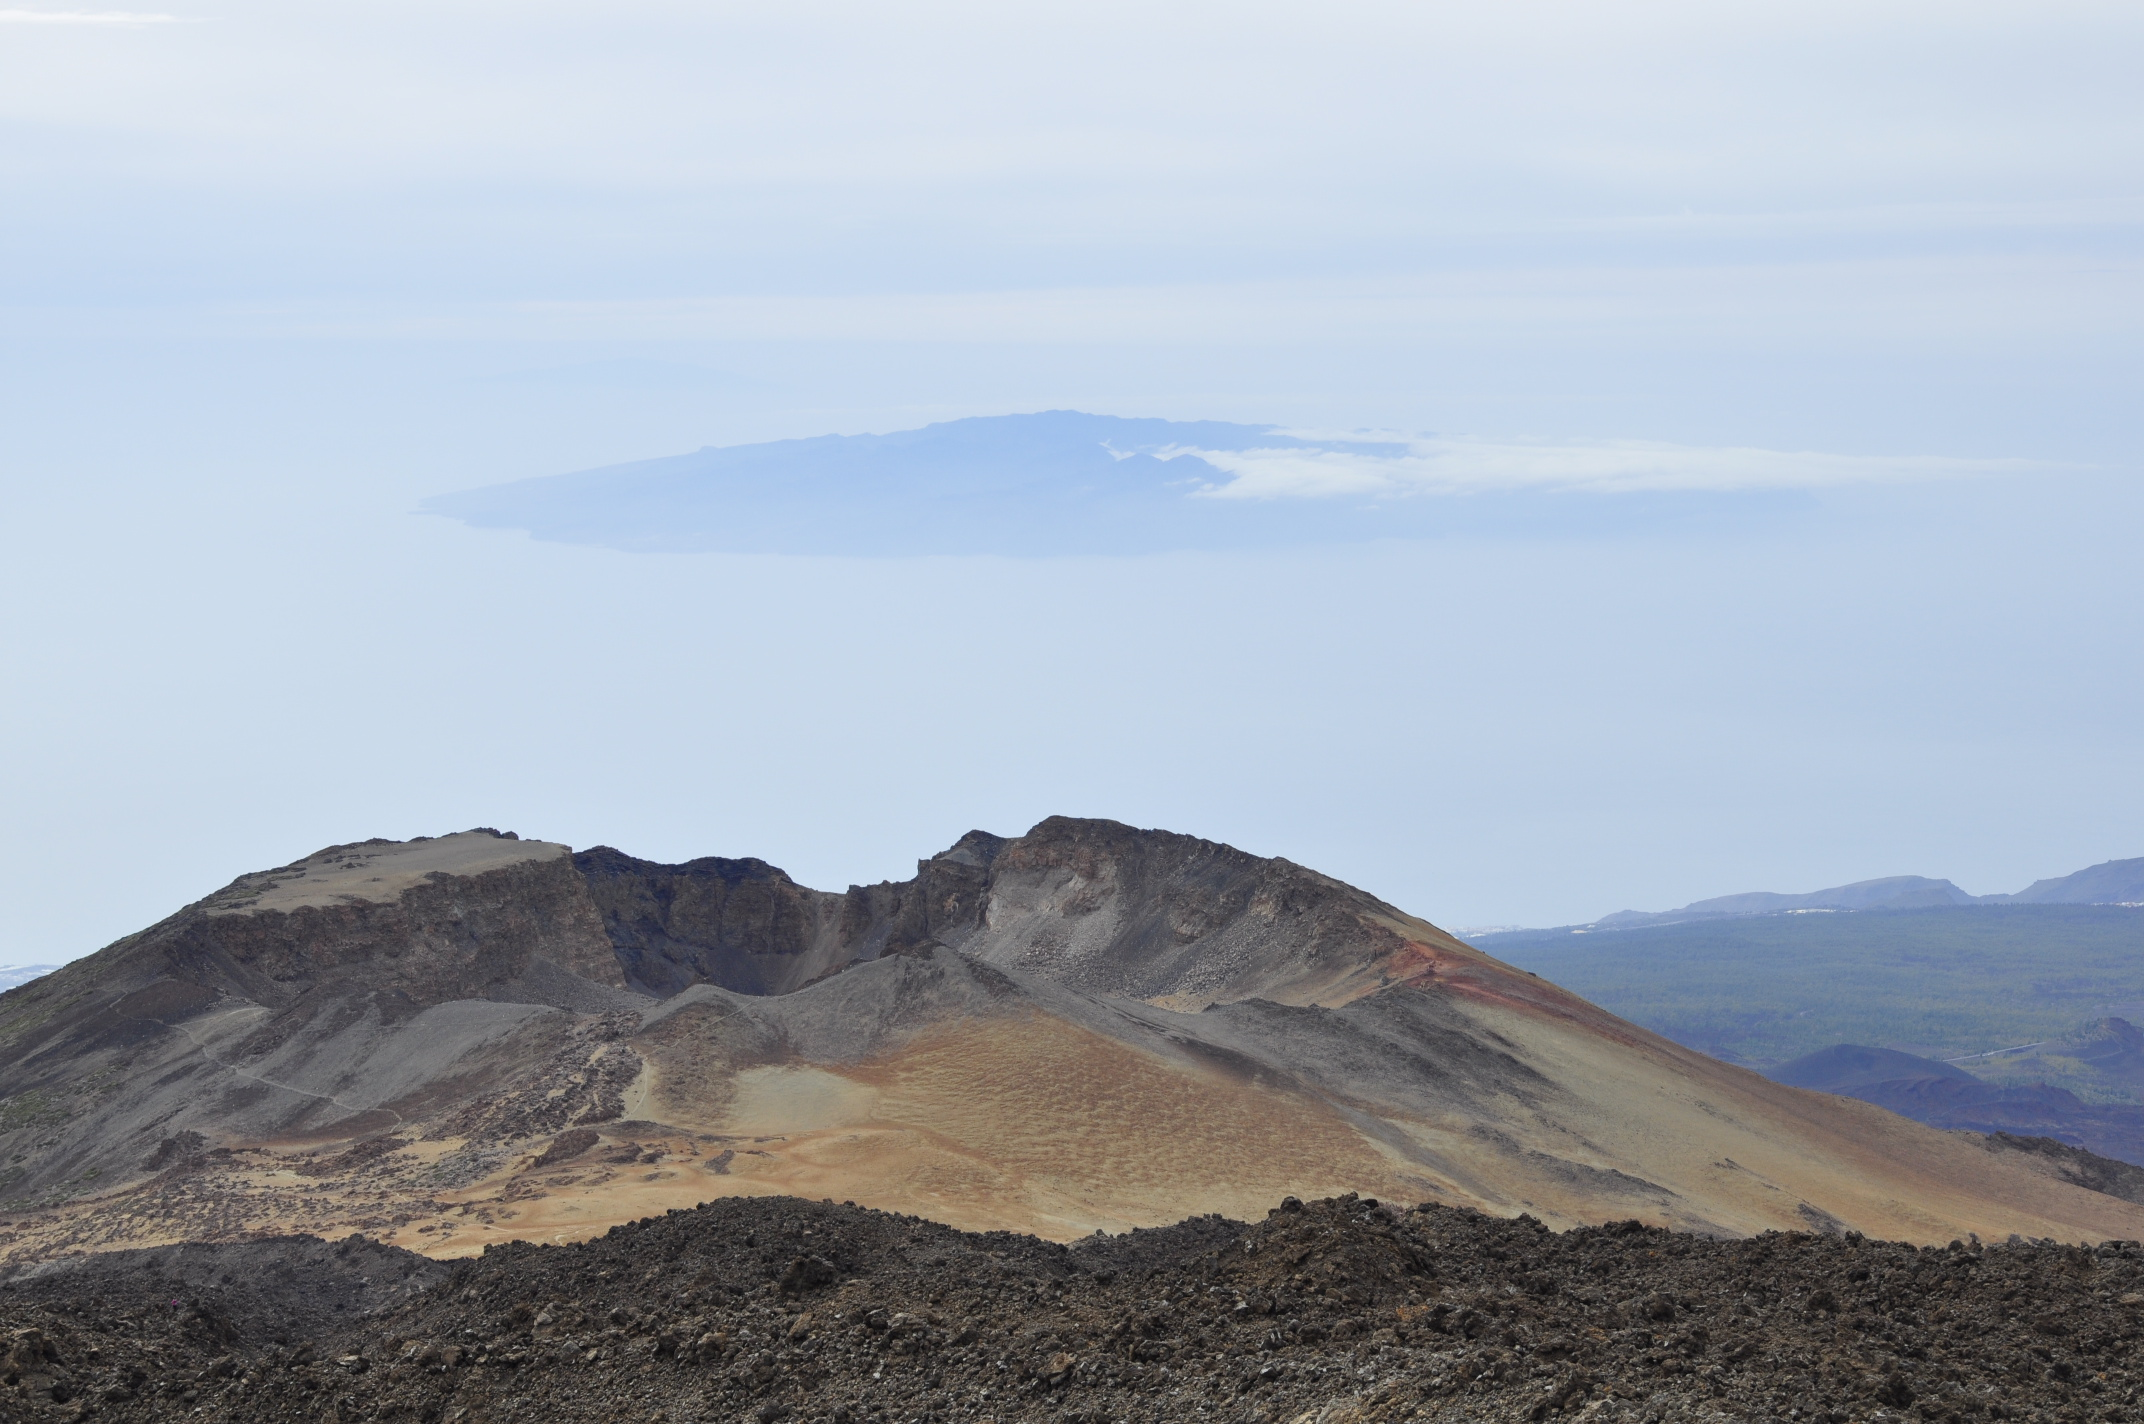 The Pico Viejo crater on Teide's south flank, with La Gomera in the background. Note the big chunk of lava to the left in the crater, the remnant of a lava lake! Four years ago,  I stood on the top of Gomera's highest peak, Alta de Garajonay, looking up onto Teide and decided: I had to go there one day.